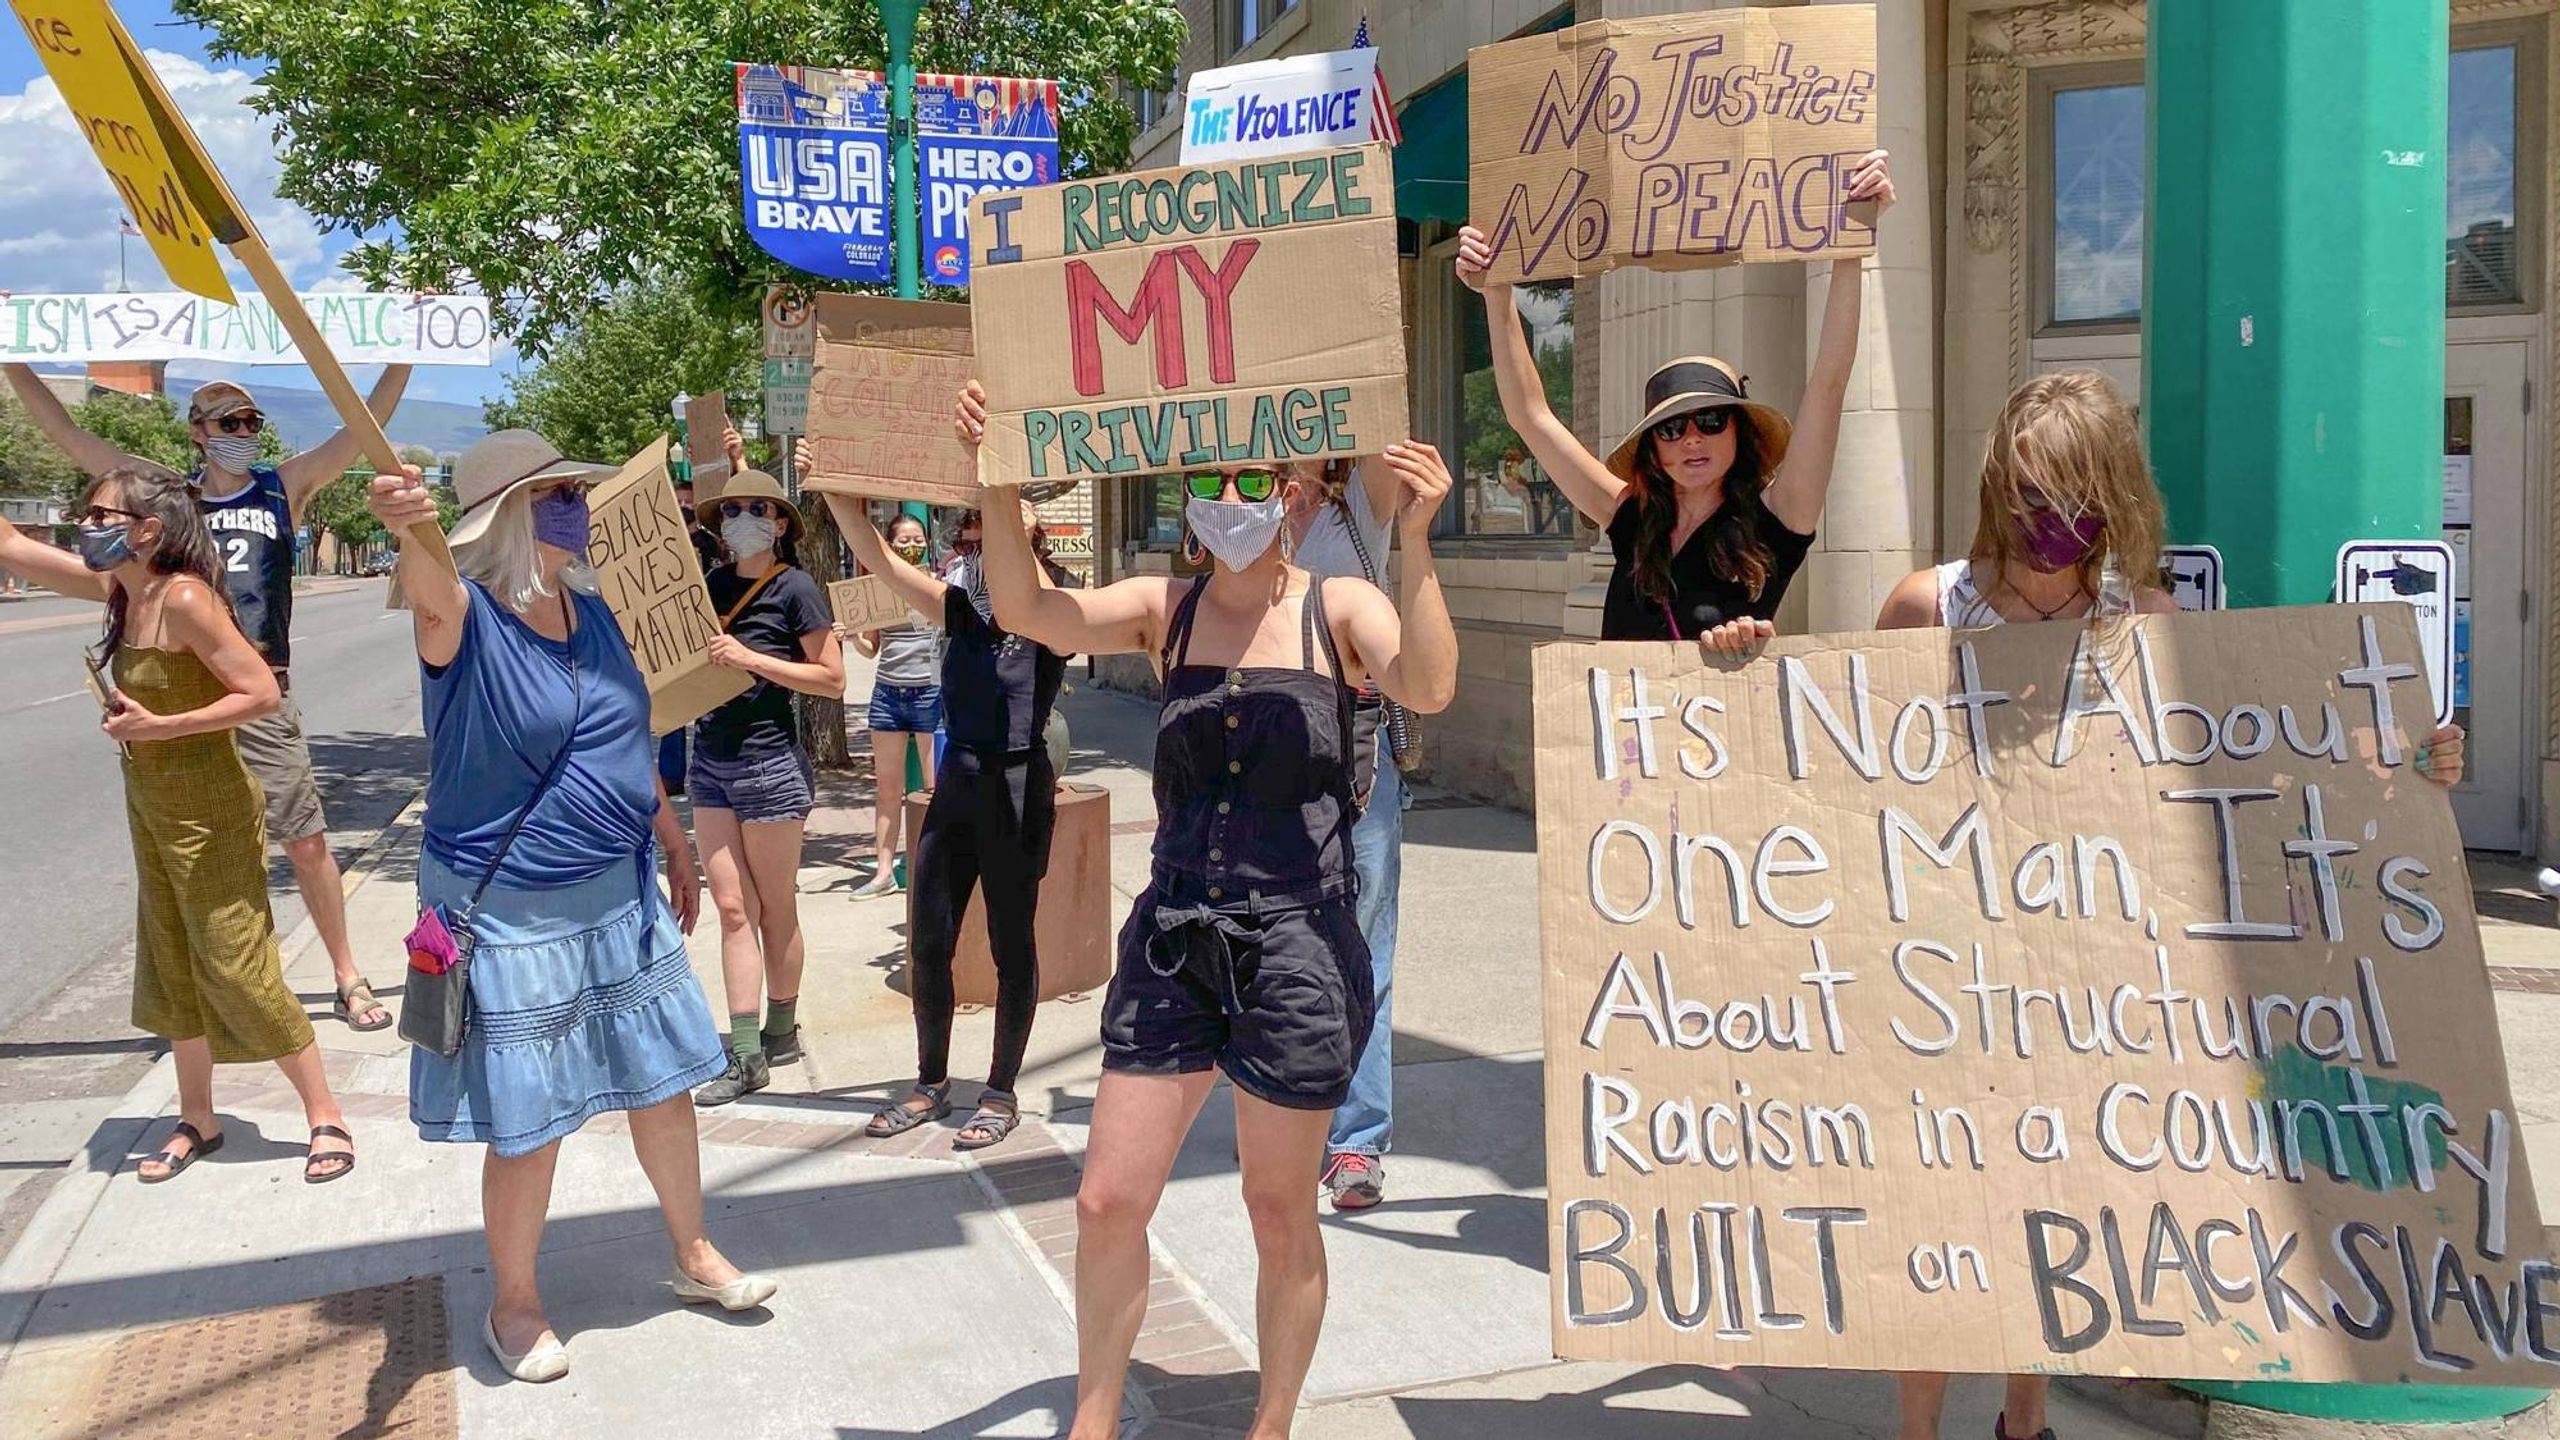 Protesters hold signs on a street corner in rural Colorado. Rewire PBS Our Future Activism Rural